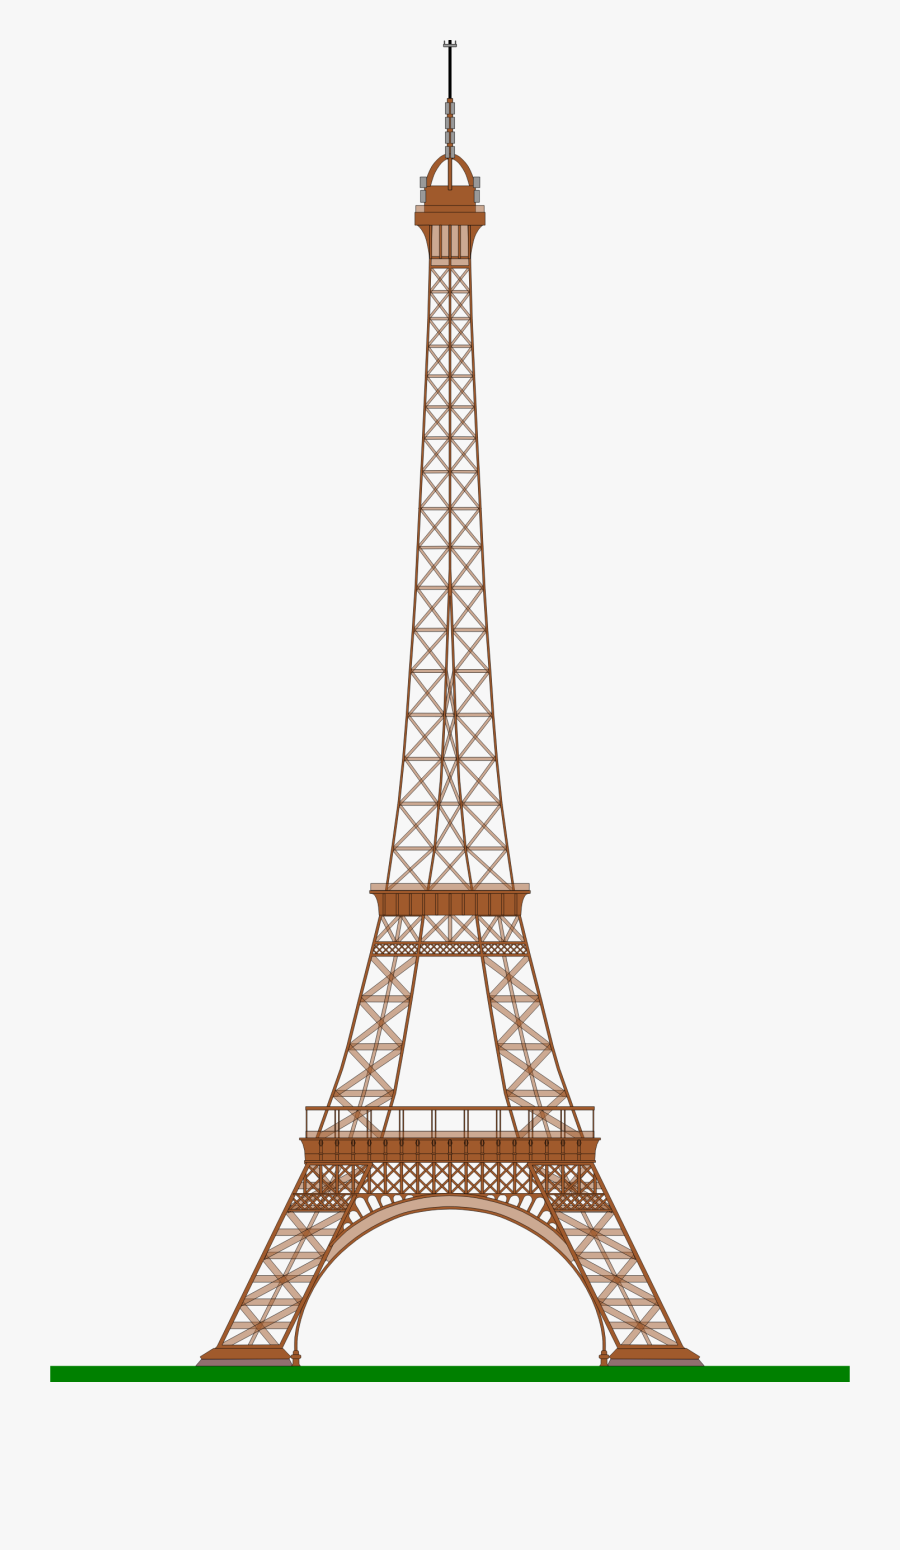 Eiffel Tower With Crown Clipart - Eiffel Tower Emoji Png, Transparent Clipart